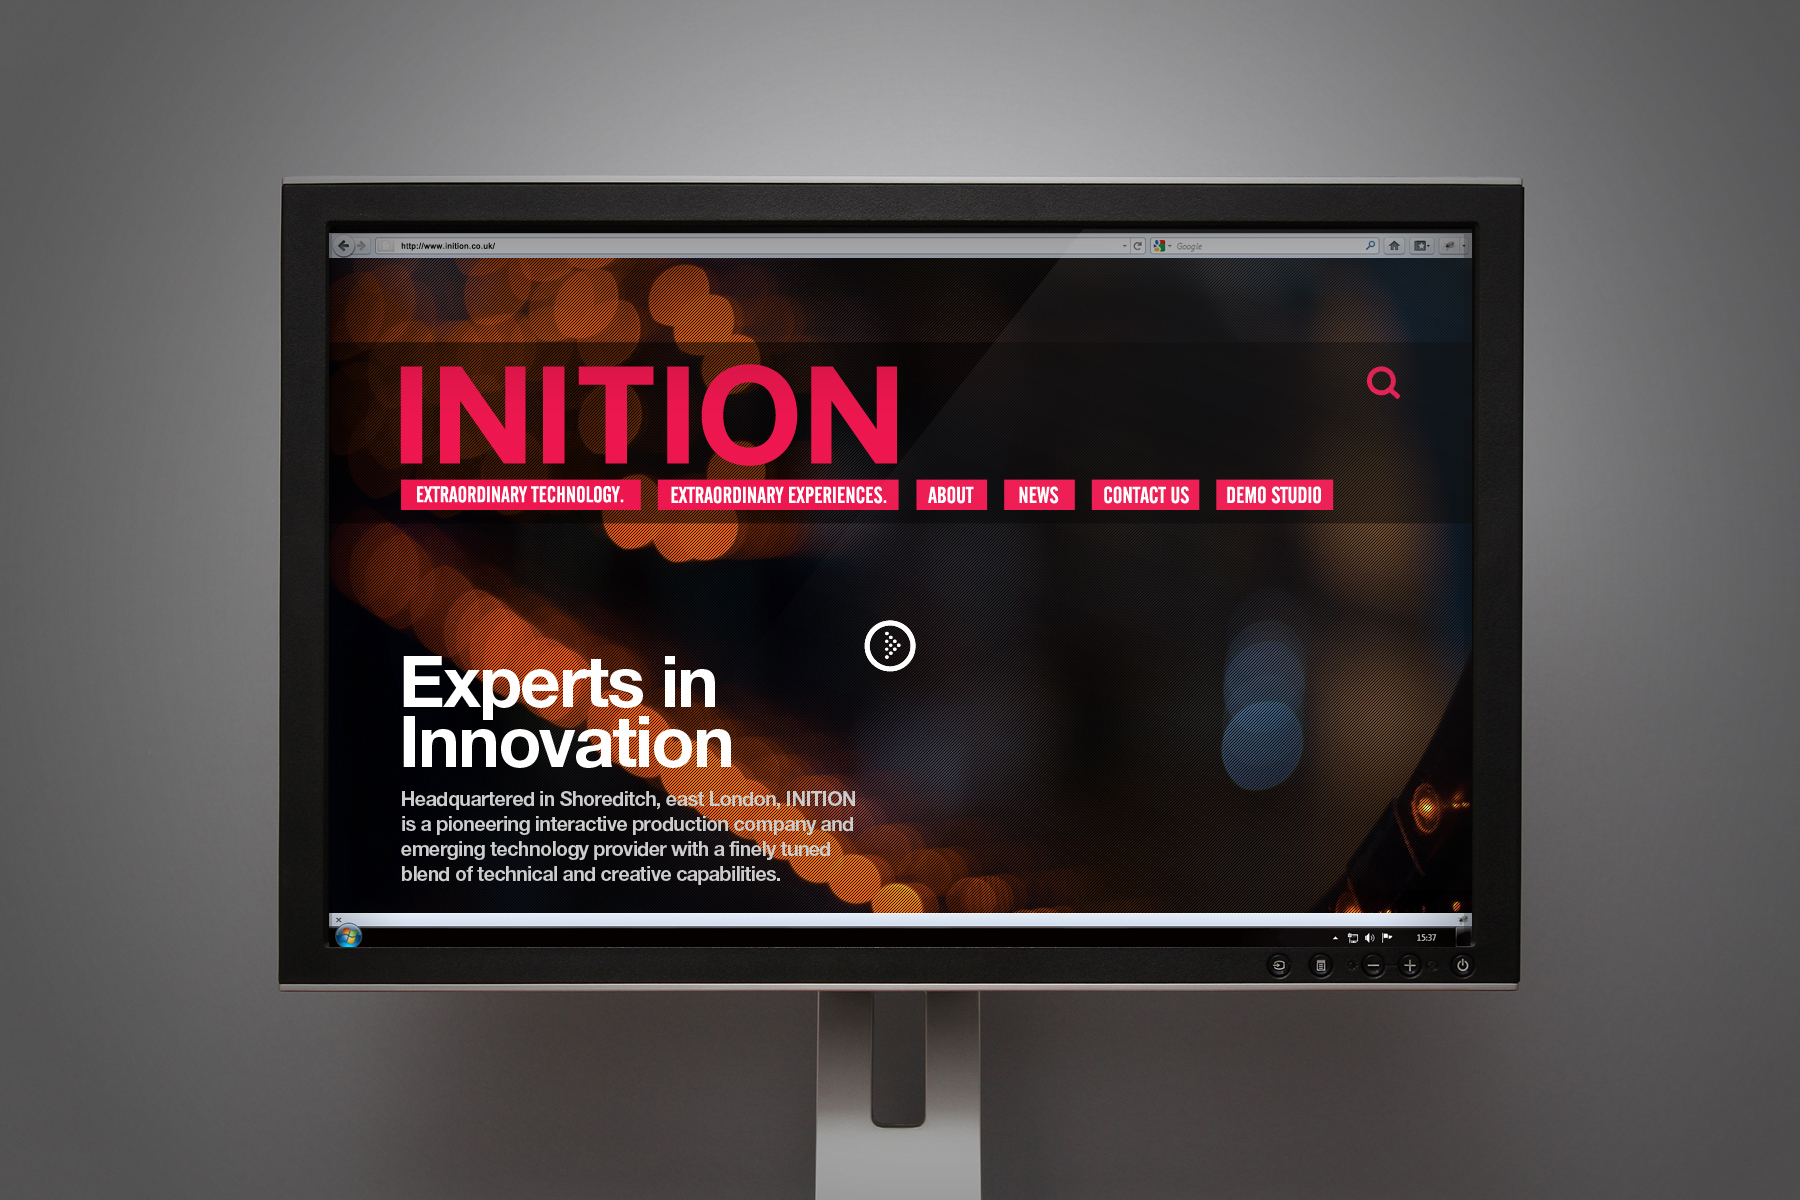 The homepage features impactful video content and imagery, as well as a simple and confident use of typography.